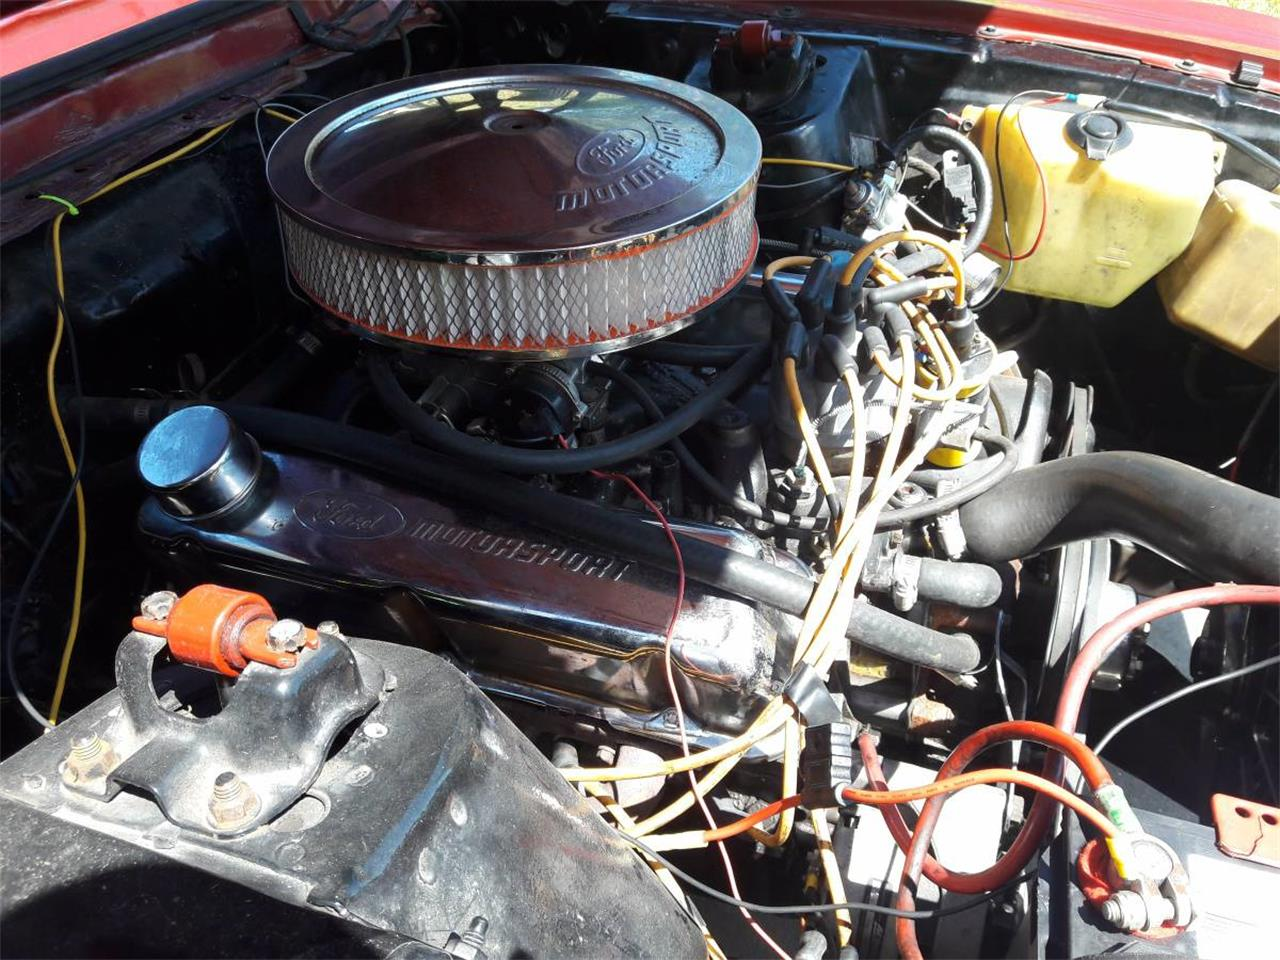 Large Picture of 1967 Mustang - $11,500.00 Offered by a Private Seller - M8AB